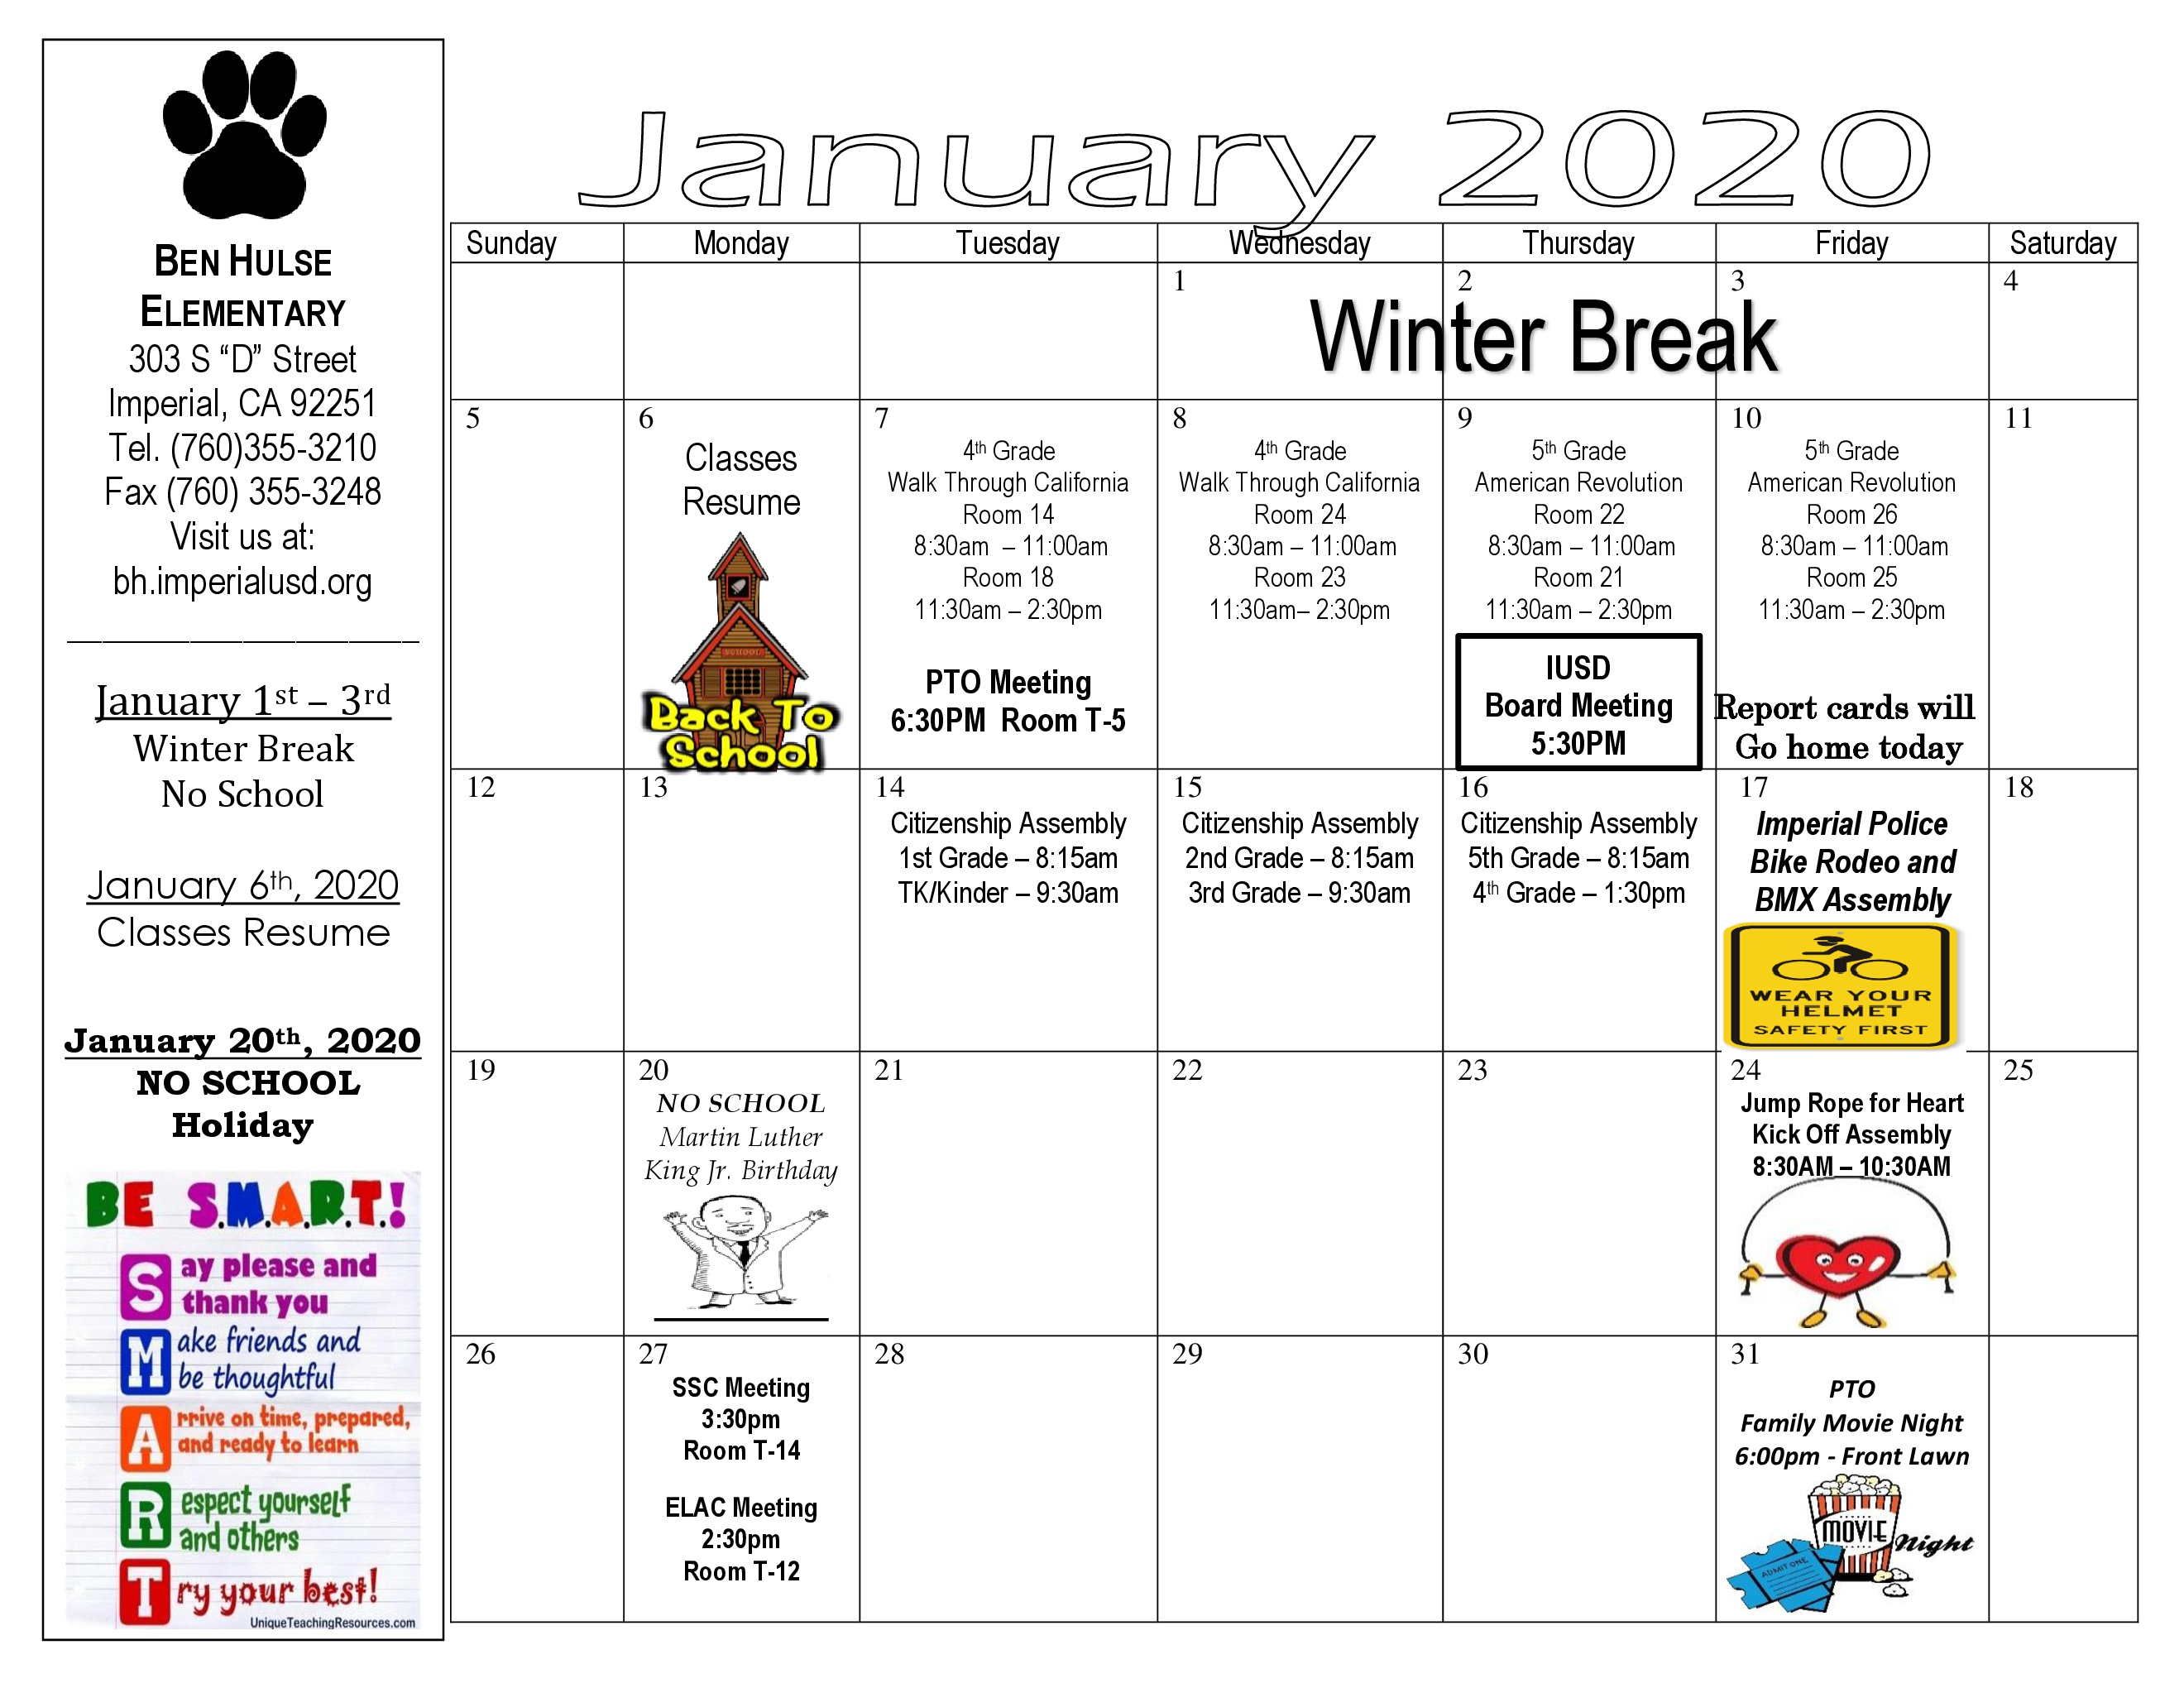 Ben Hulse Elementary School  Monthly Calendar & Activities with regard to Tl Waggoner Calendar